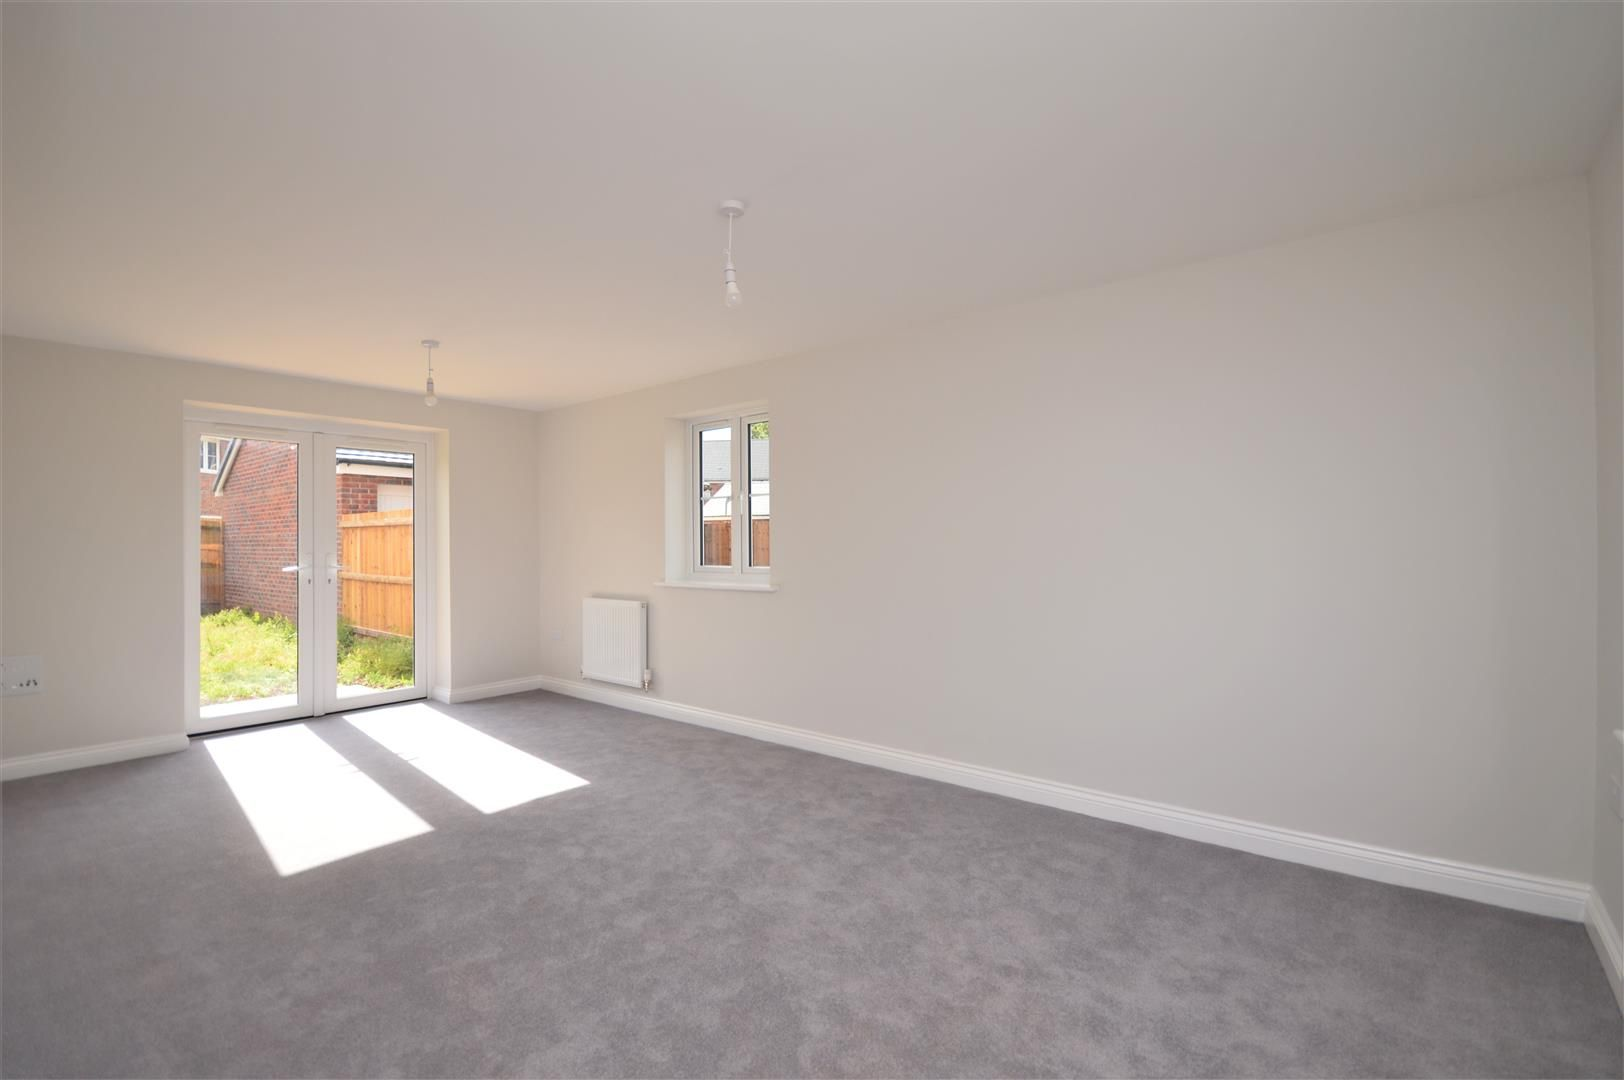 4 bed detached for sale in Kingstone  - Property Image 5